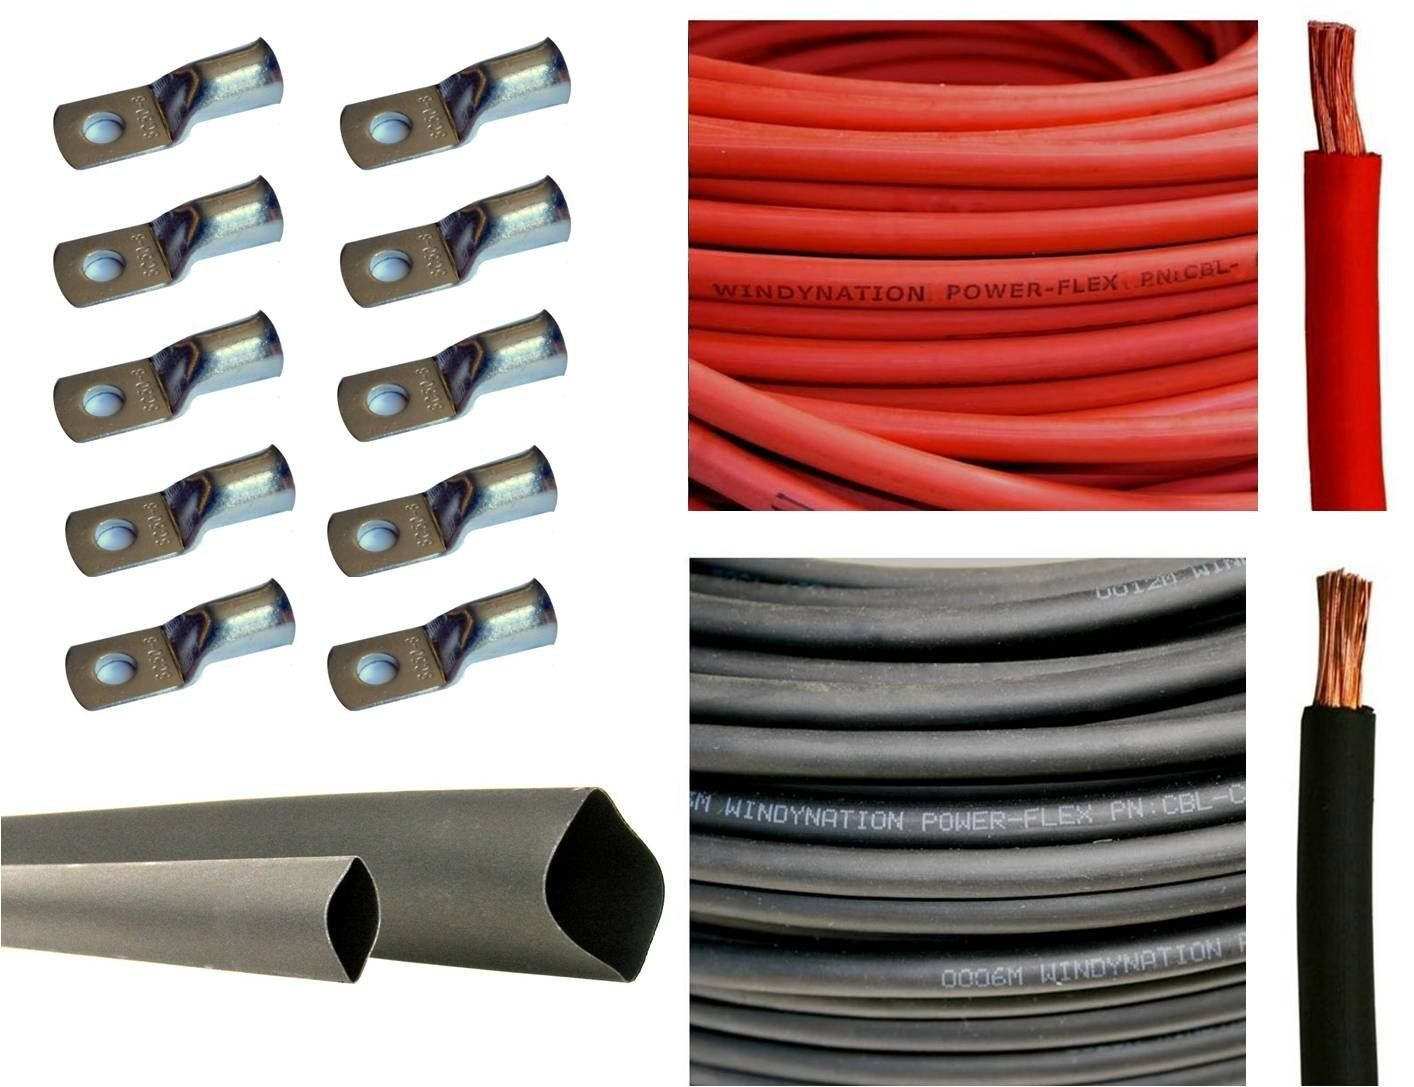 4 Gauge 4 Awg 15 Feet Red 15 Feet Black Welding Battery Pure Copper Flexible Cable 10pcs Of 3 8 Tinned Copper Cable Lug Terminal Connectors 3 Feet Black Heat Shrink Tubing Welding Cable Pure Products Pure Copper